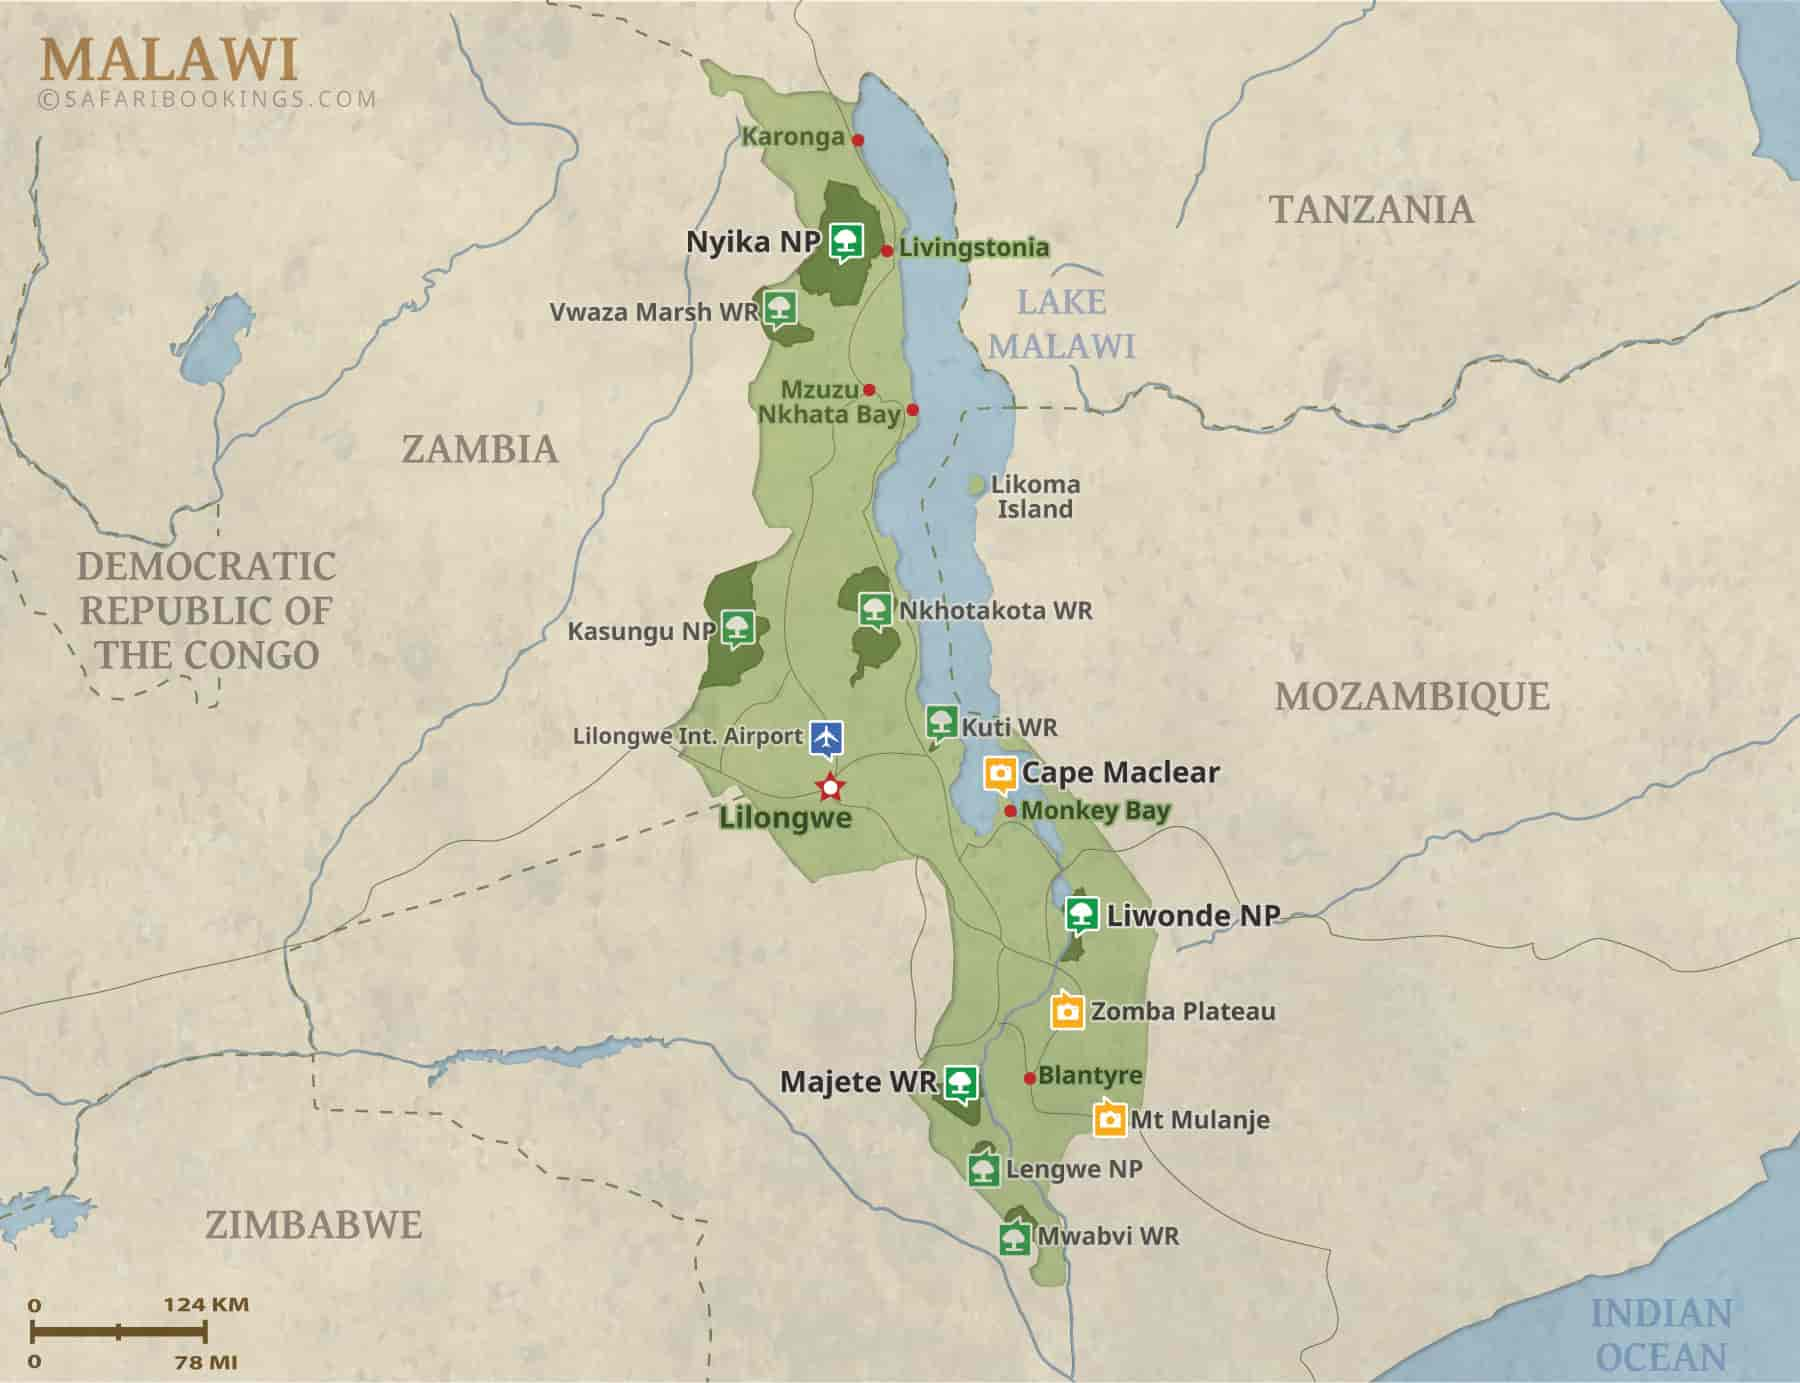 Popular Routes in Malawi